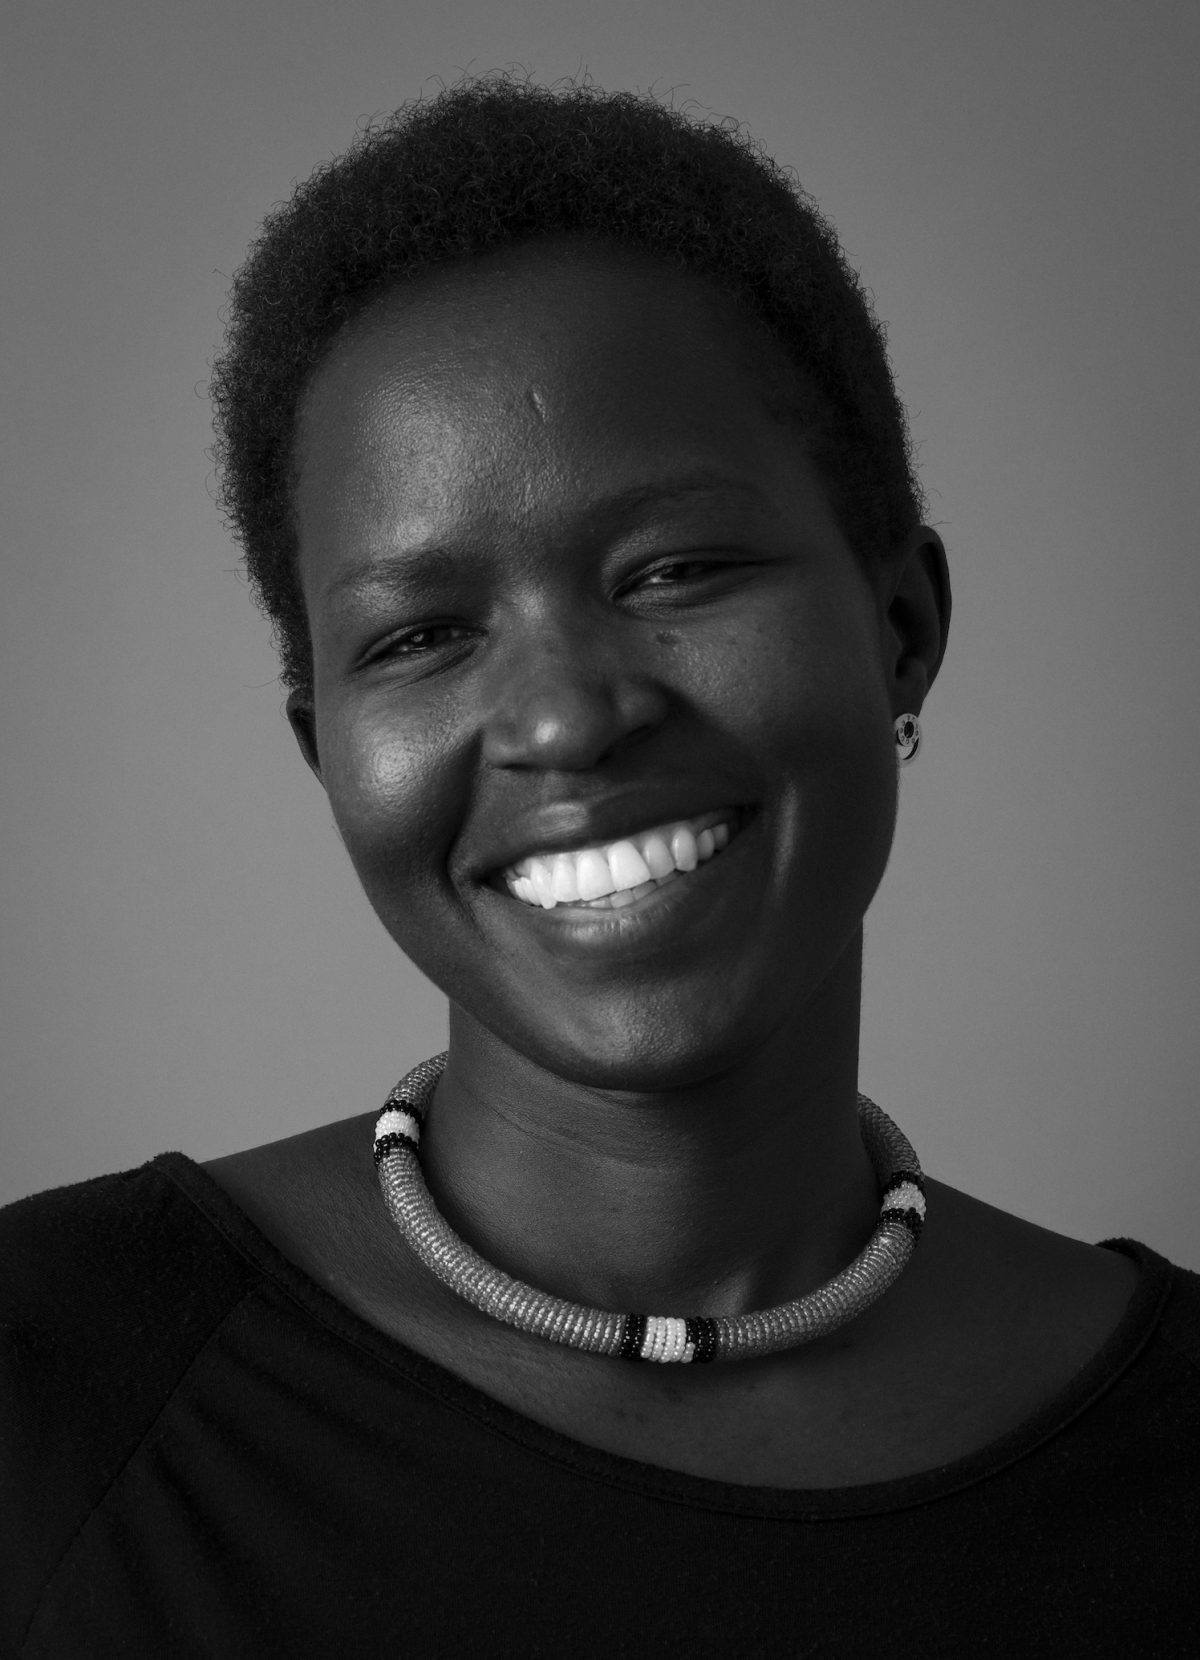 Kakenya Ntaiya, Founder and President of the Kakenya Center for Excellence